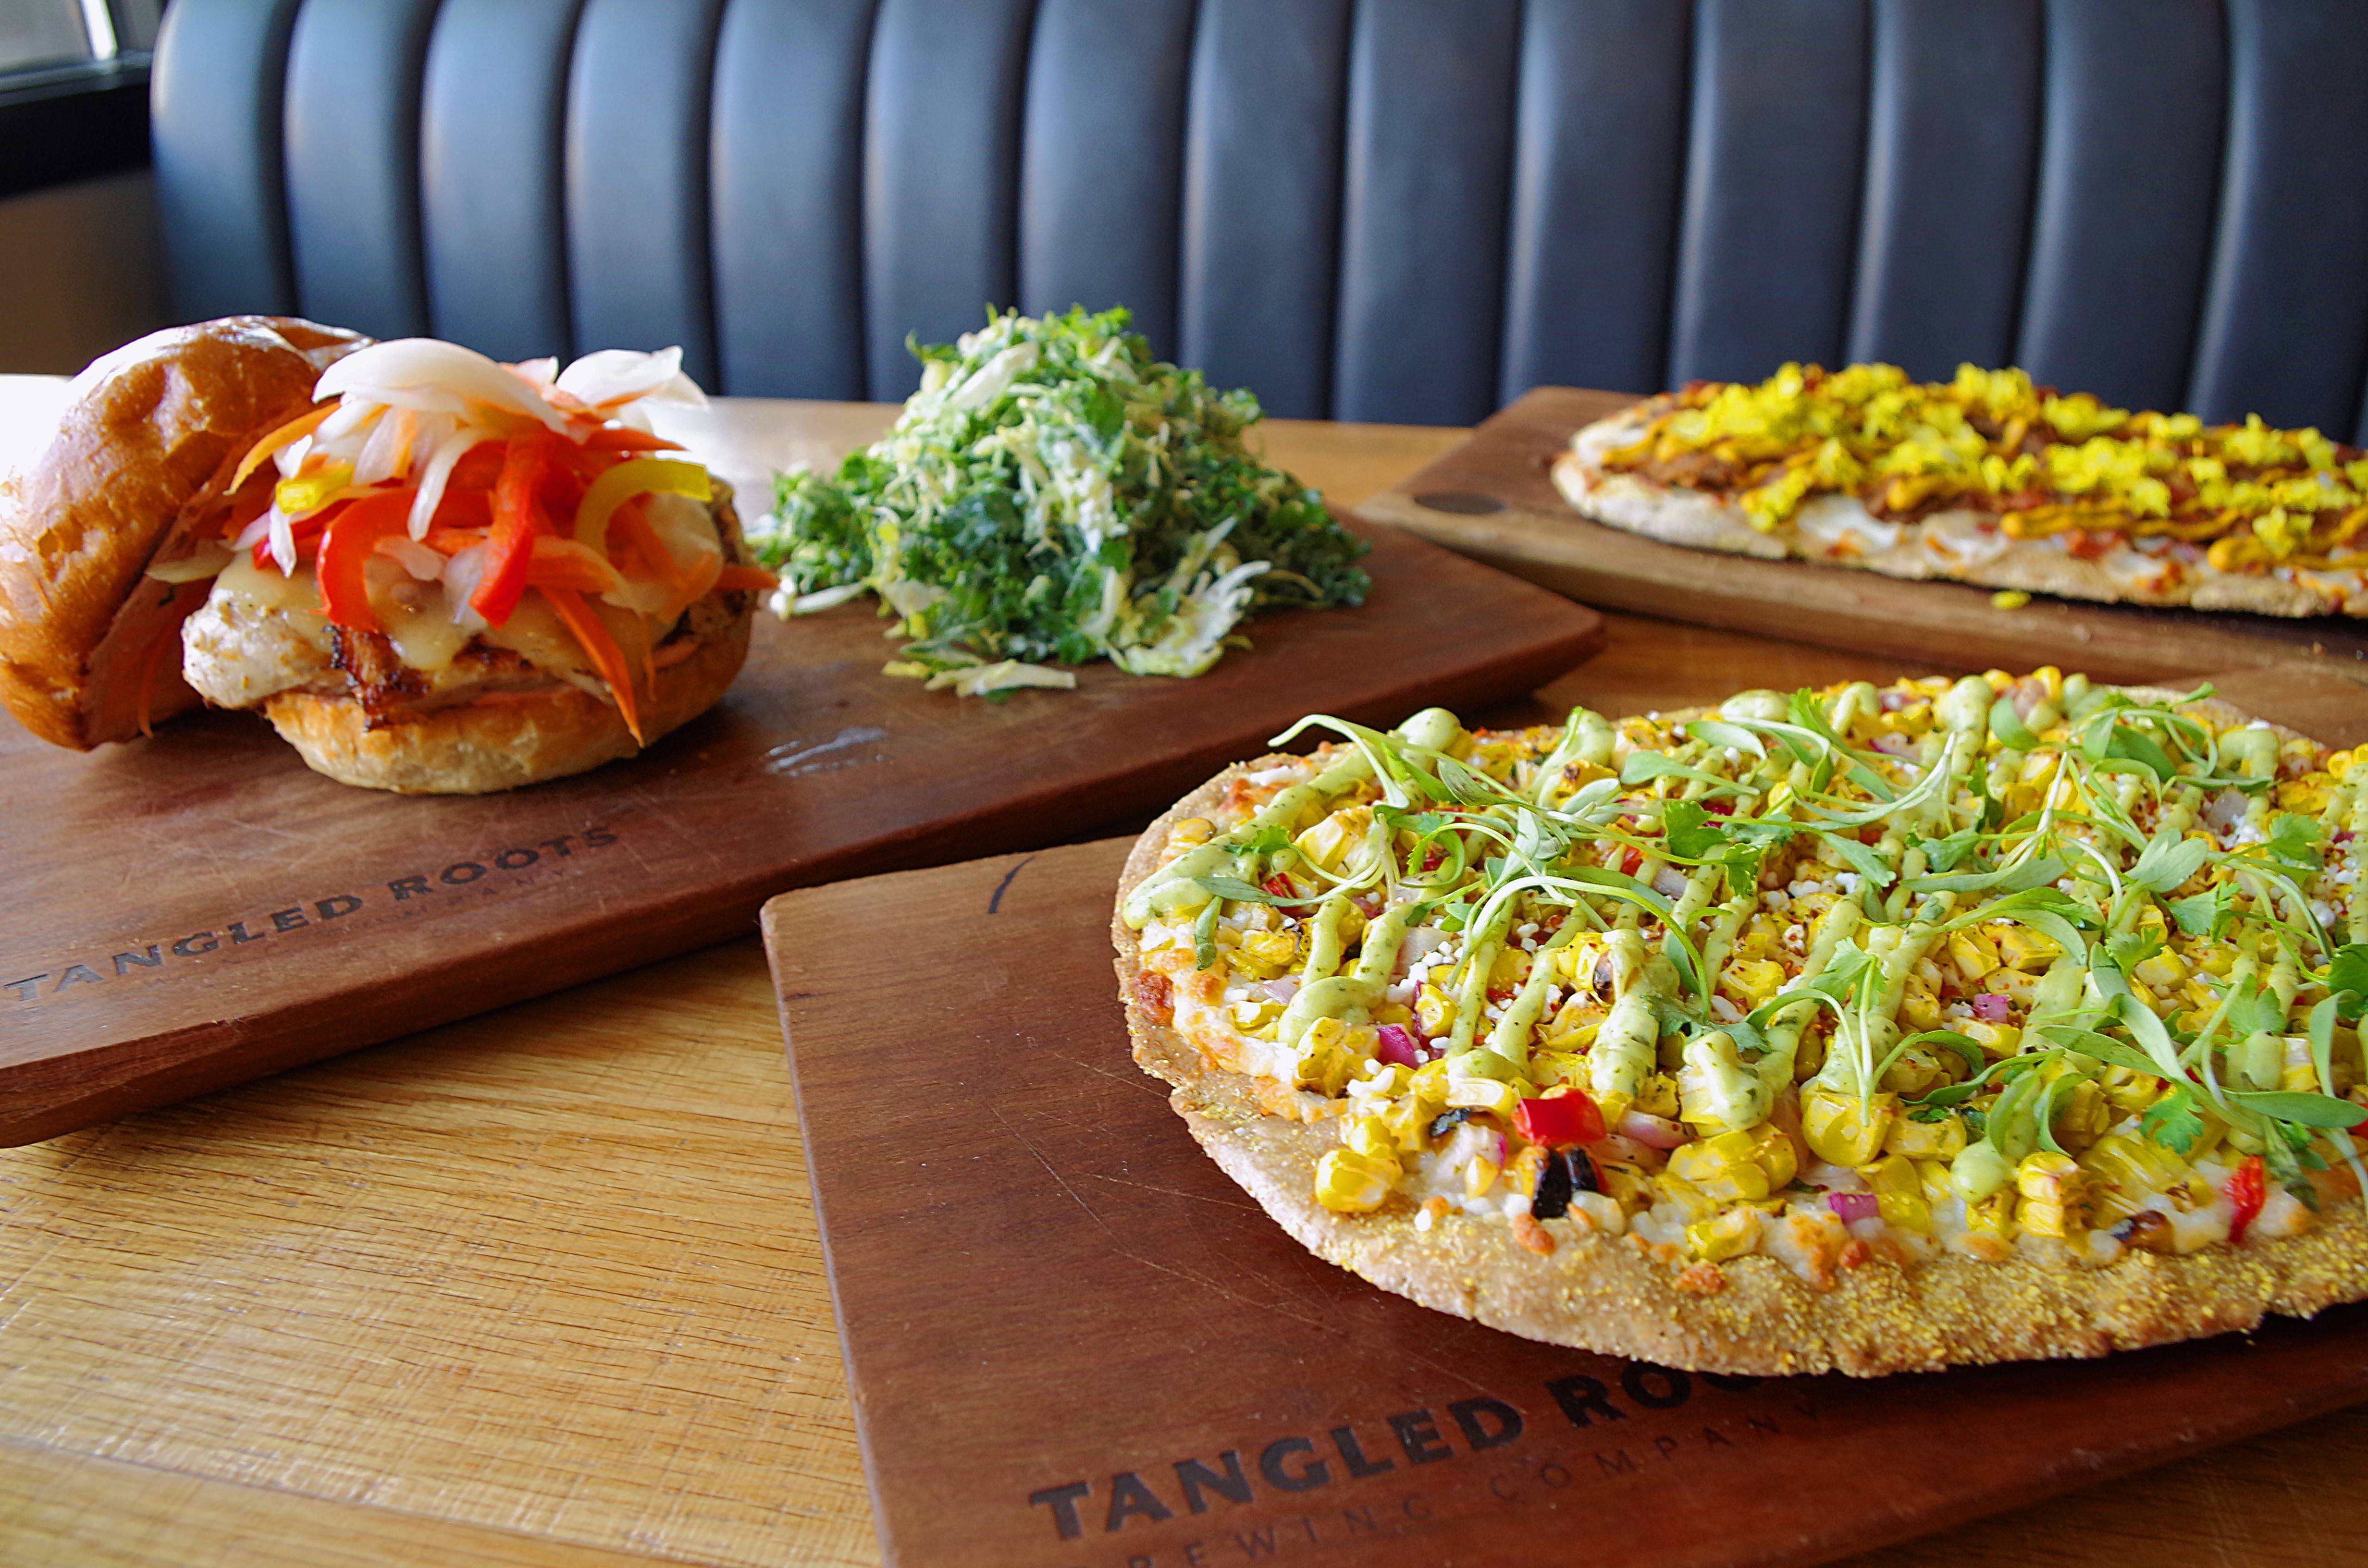 Sandwich and Elote flatbread by Tangled Roots Brewing Company.